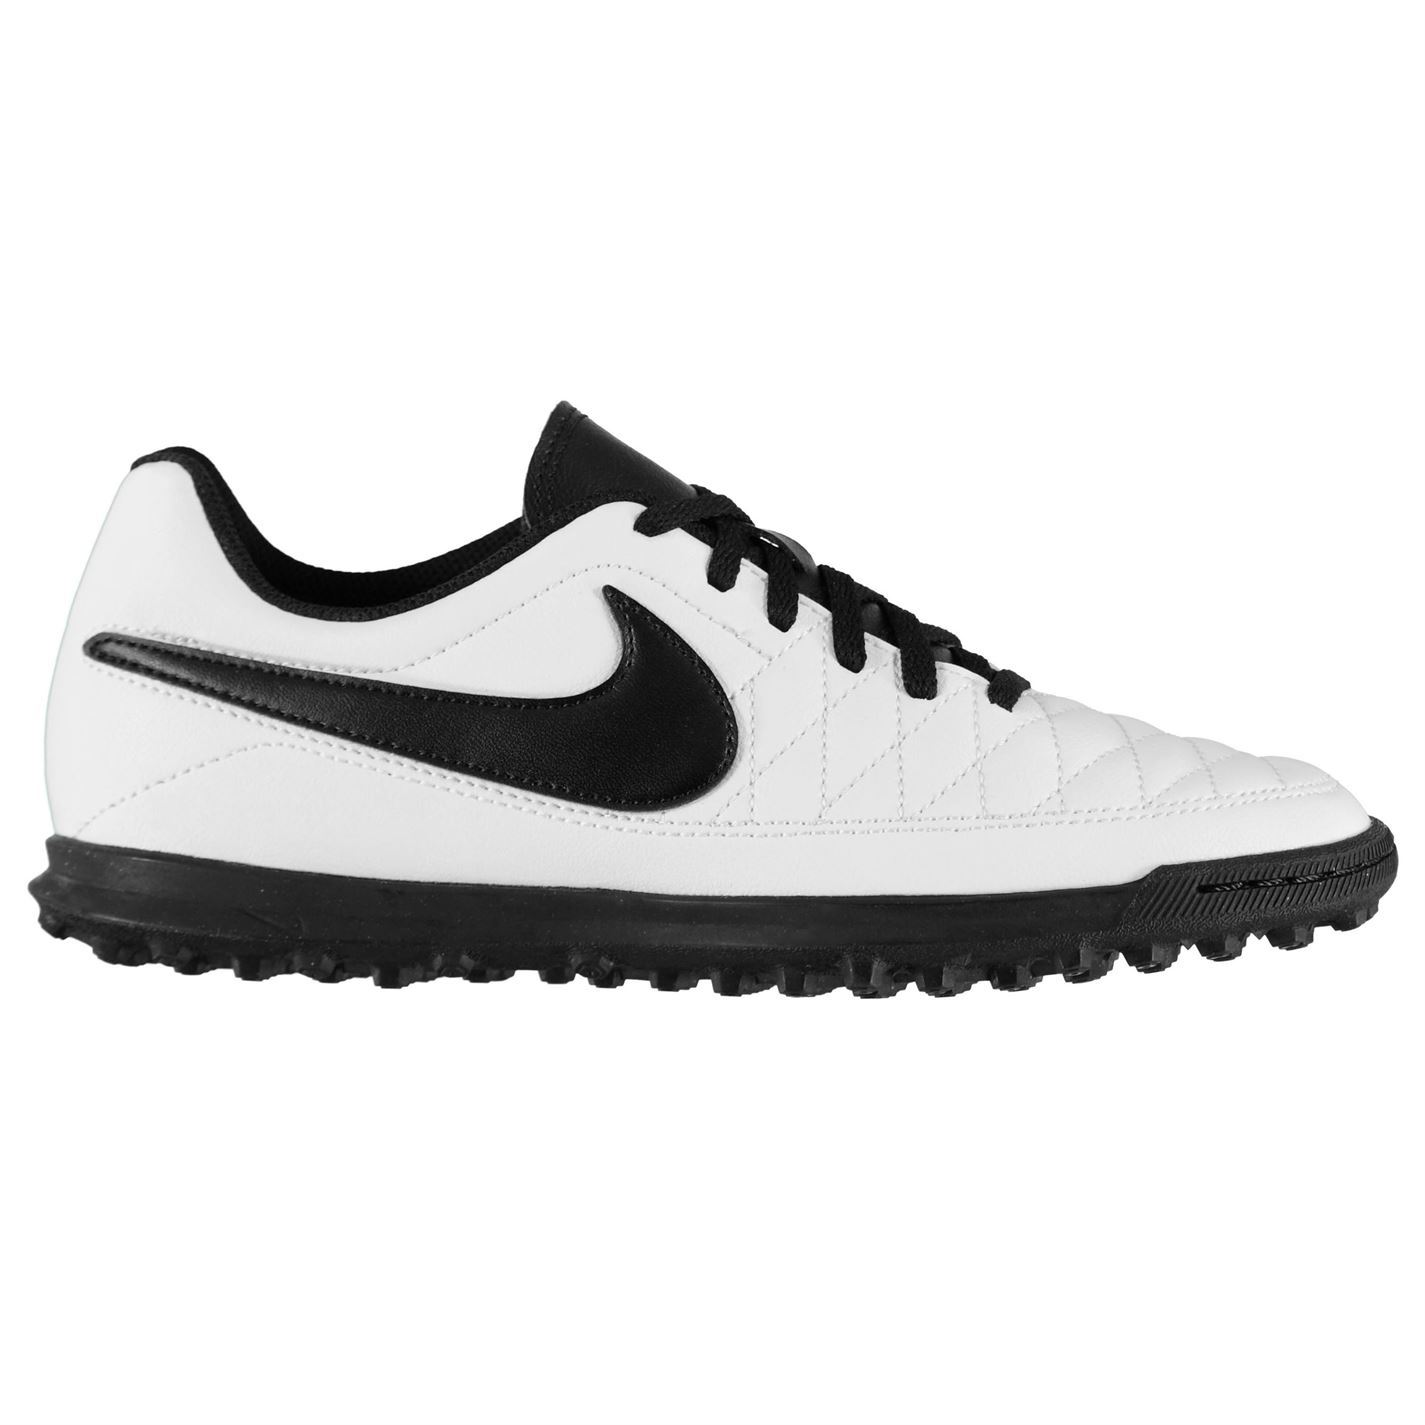 Nike-majestry-Astro-Turf-Football-Baskets-Pour-Homme-Football-Baskets-Chaussures miniature 9